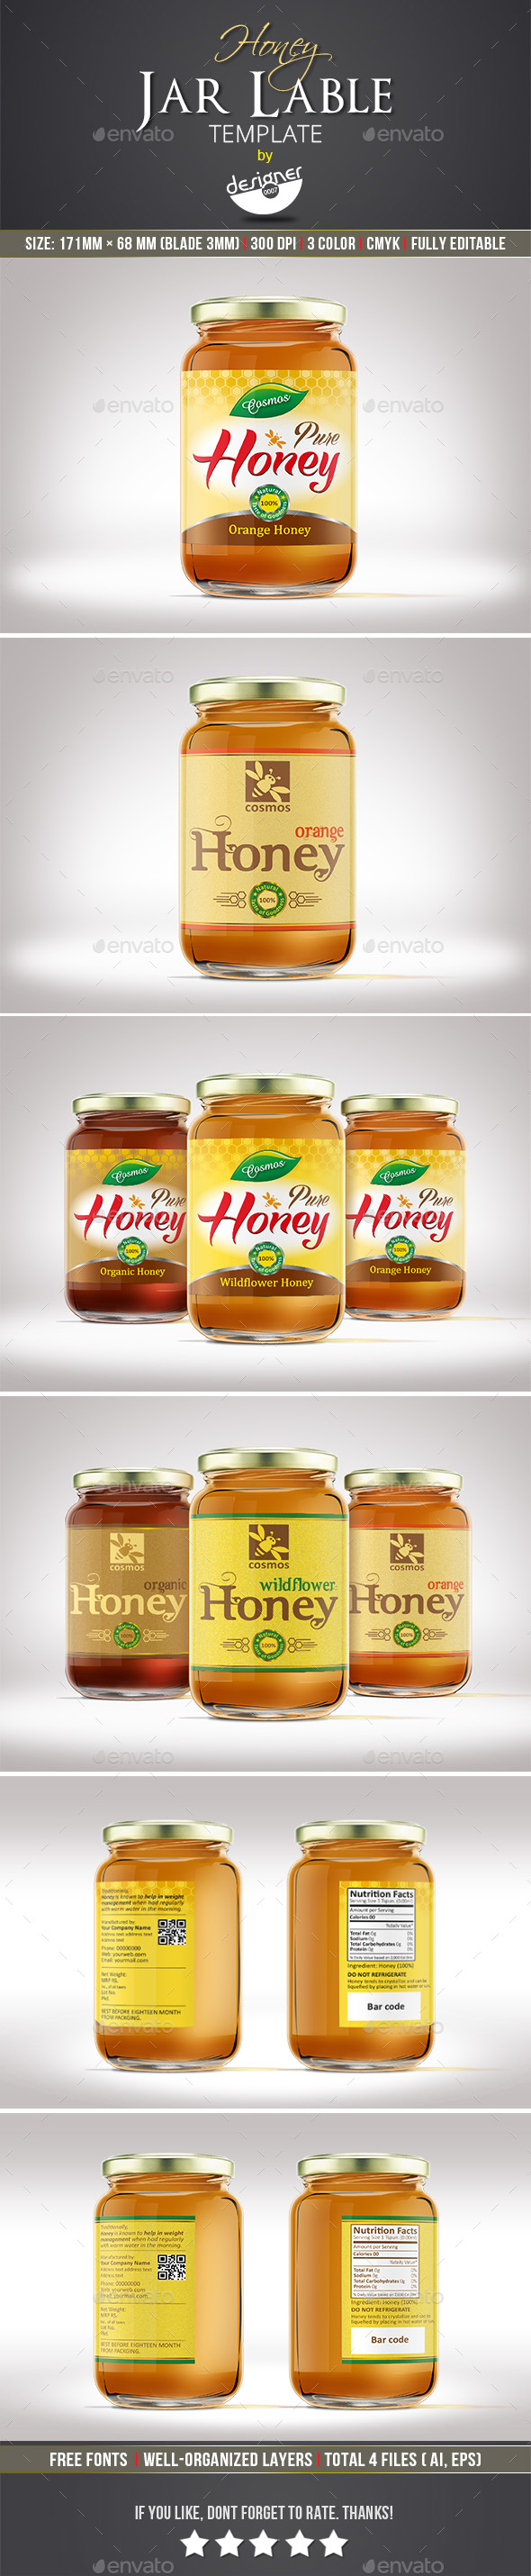 Honey Jar Label Template  Packaging Design Templates Label